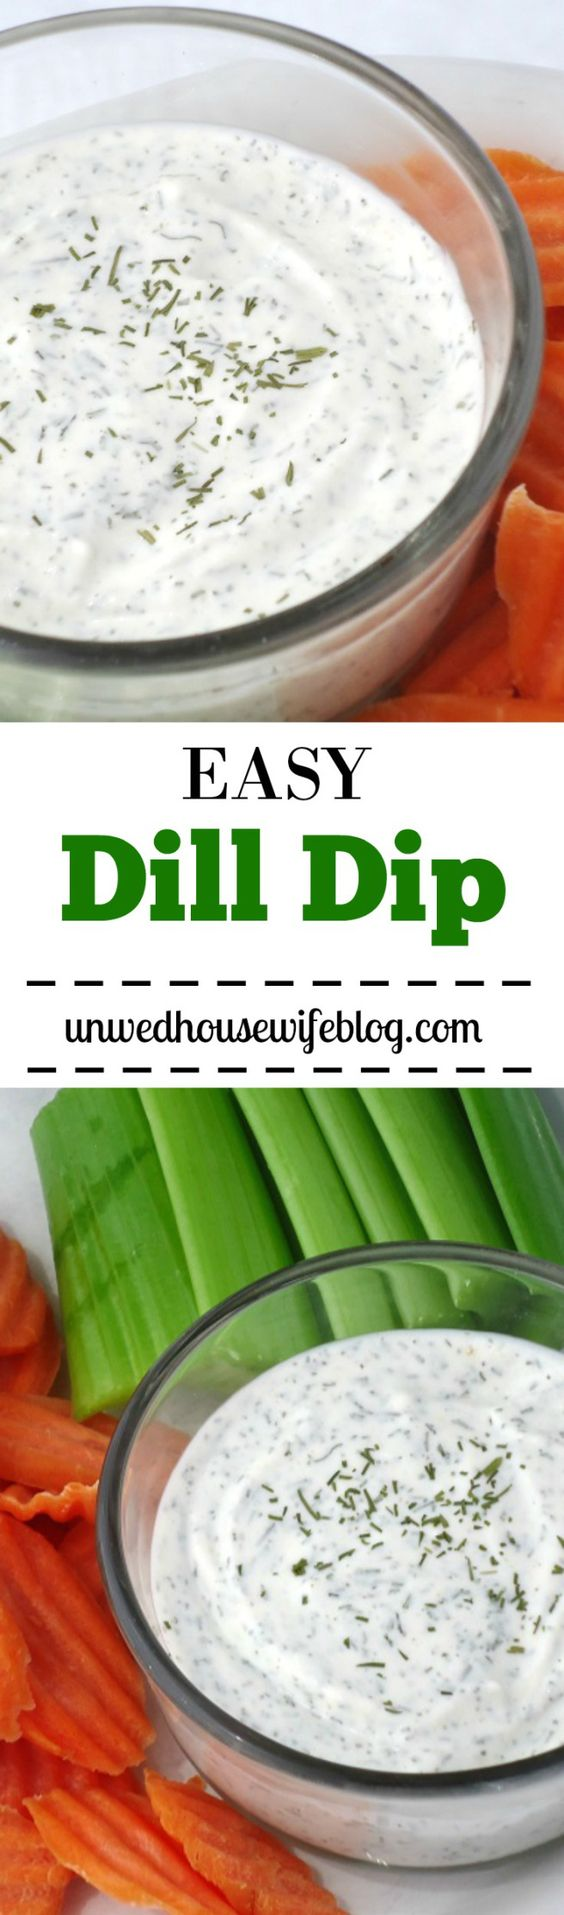 Easy Dill Dip | Easy, homemade dill dip recipe that's perfect for parties and weekends. Dip your favorite raw vegetables or crinkle-cut chips into this delicious, easy dill dip.